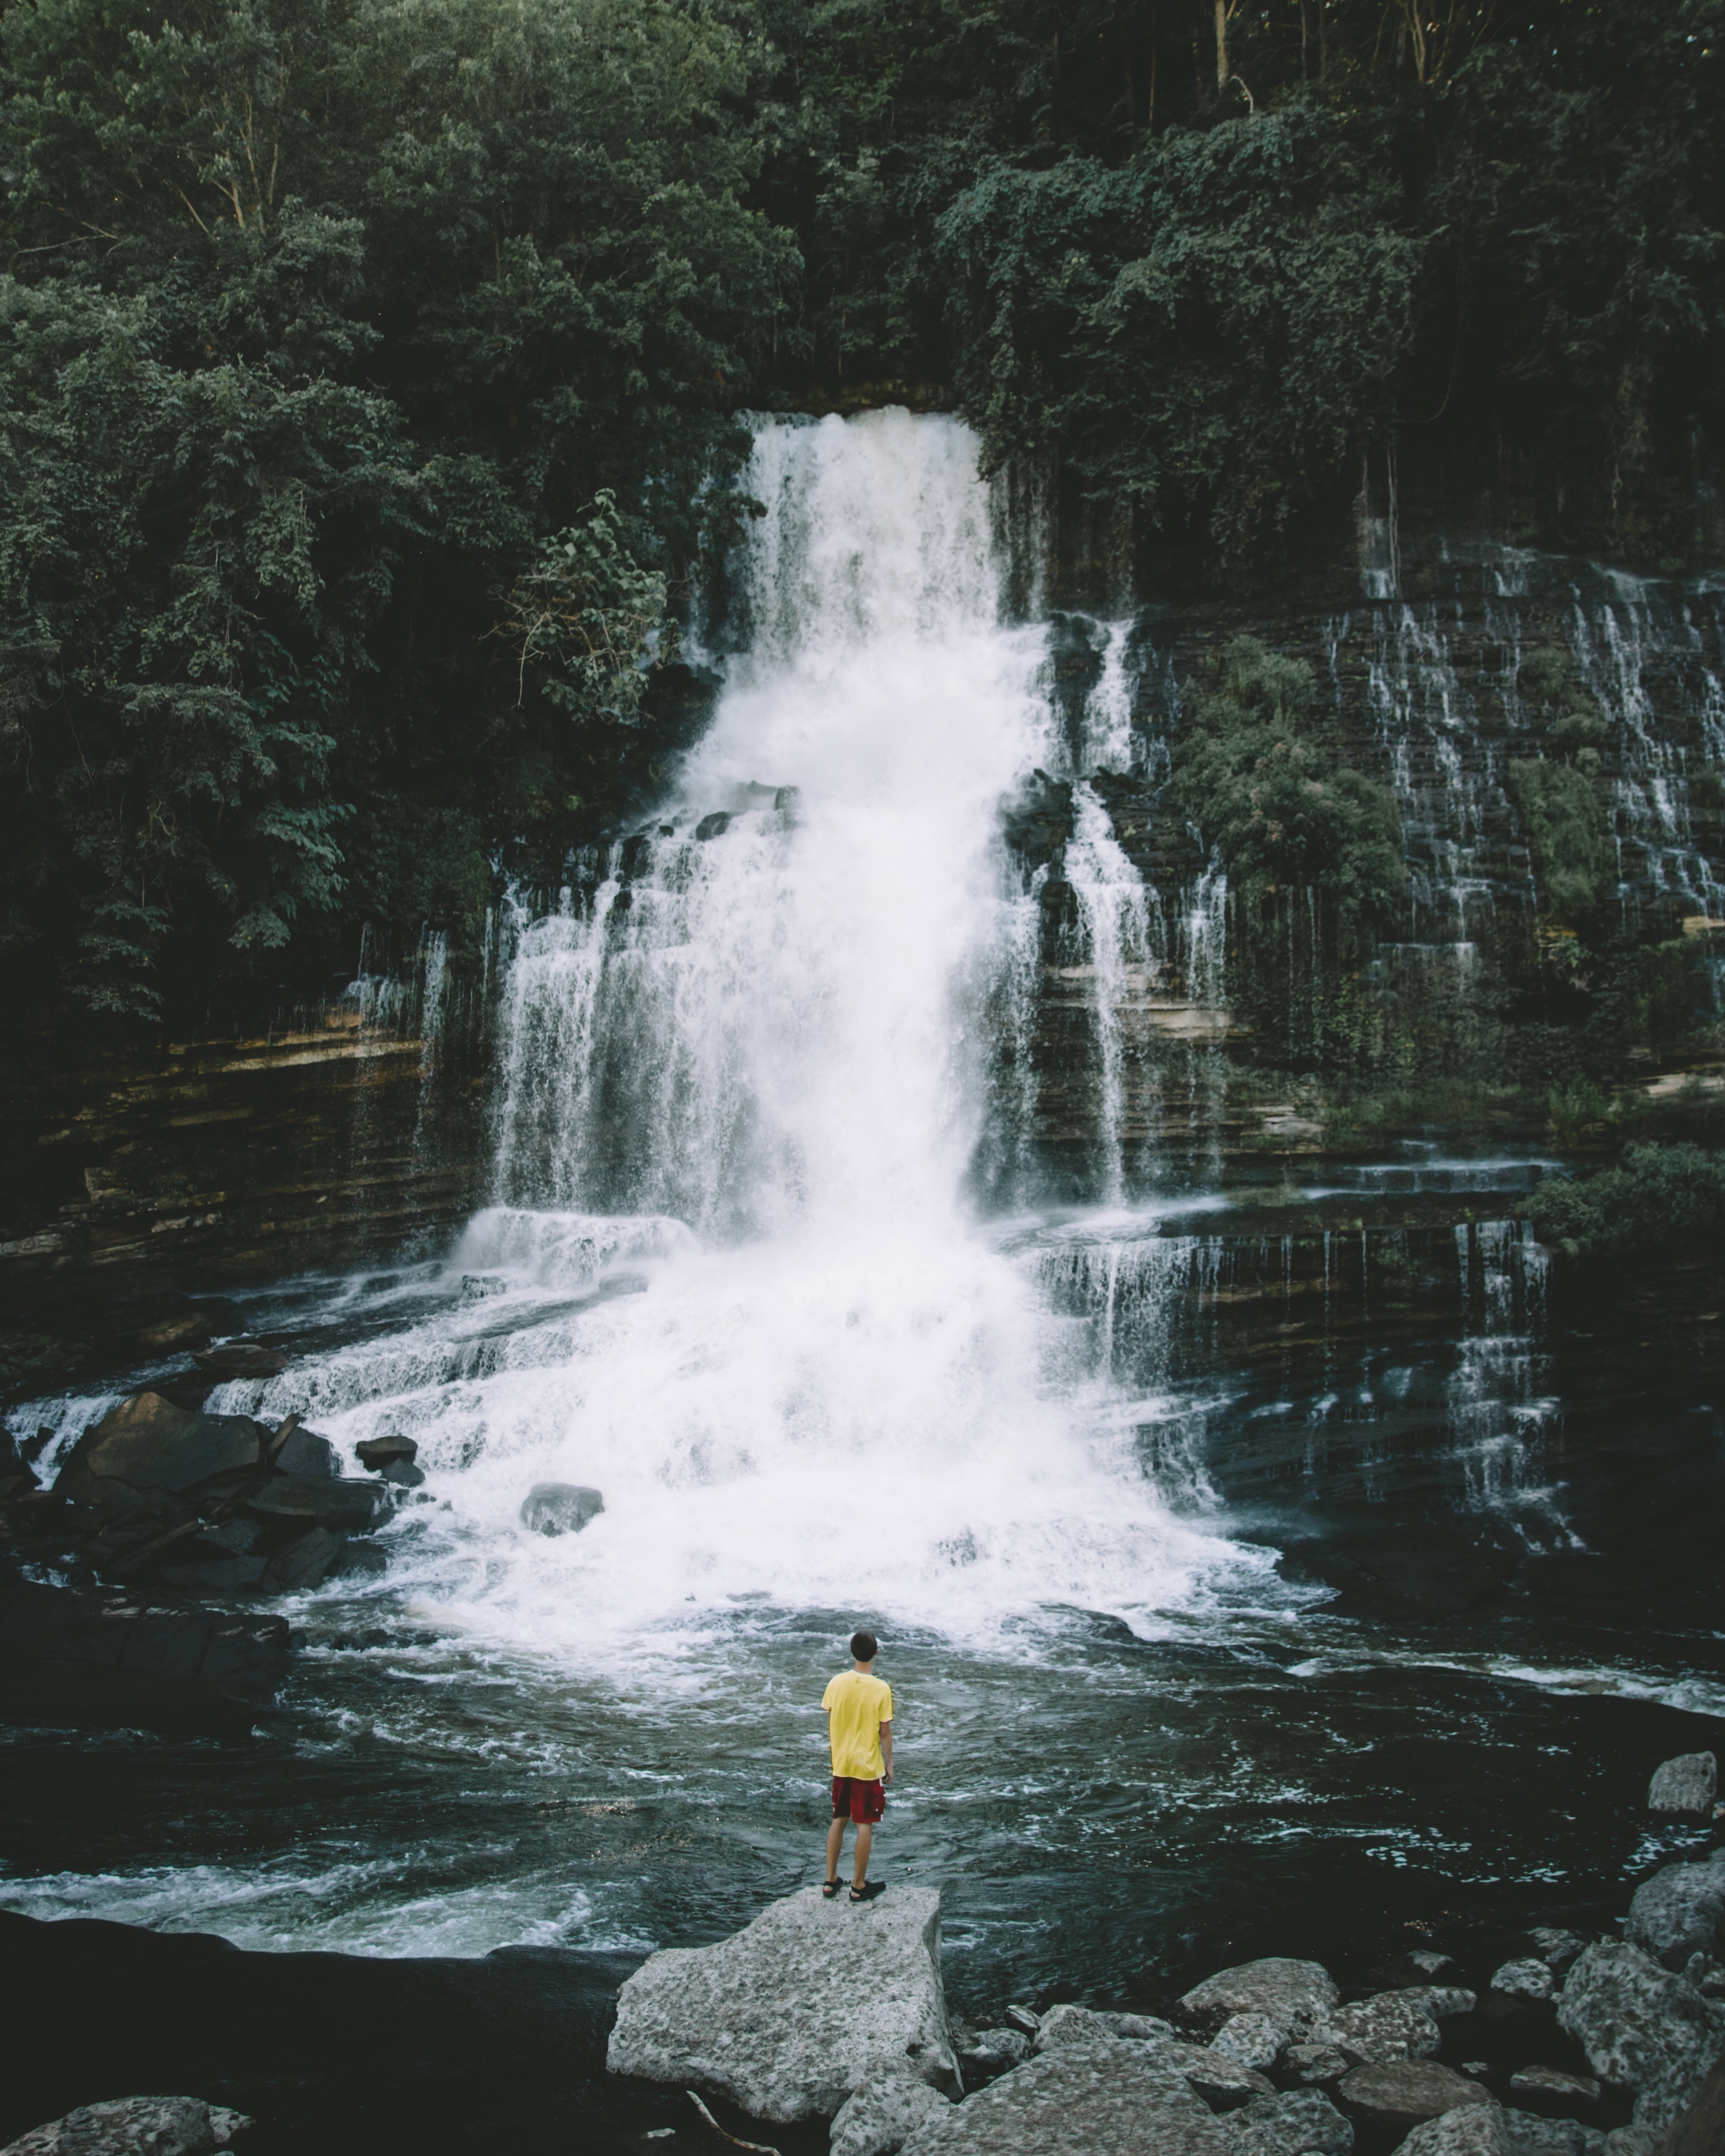 person standing on rock looking at water falls